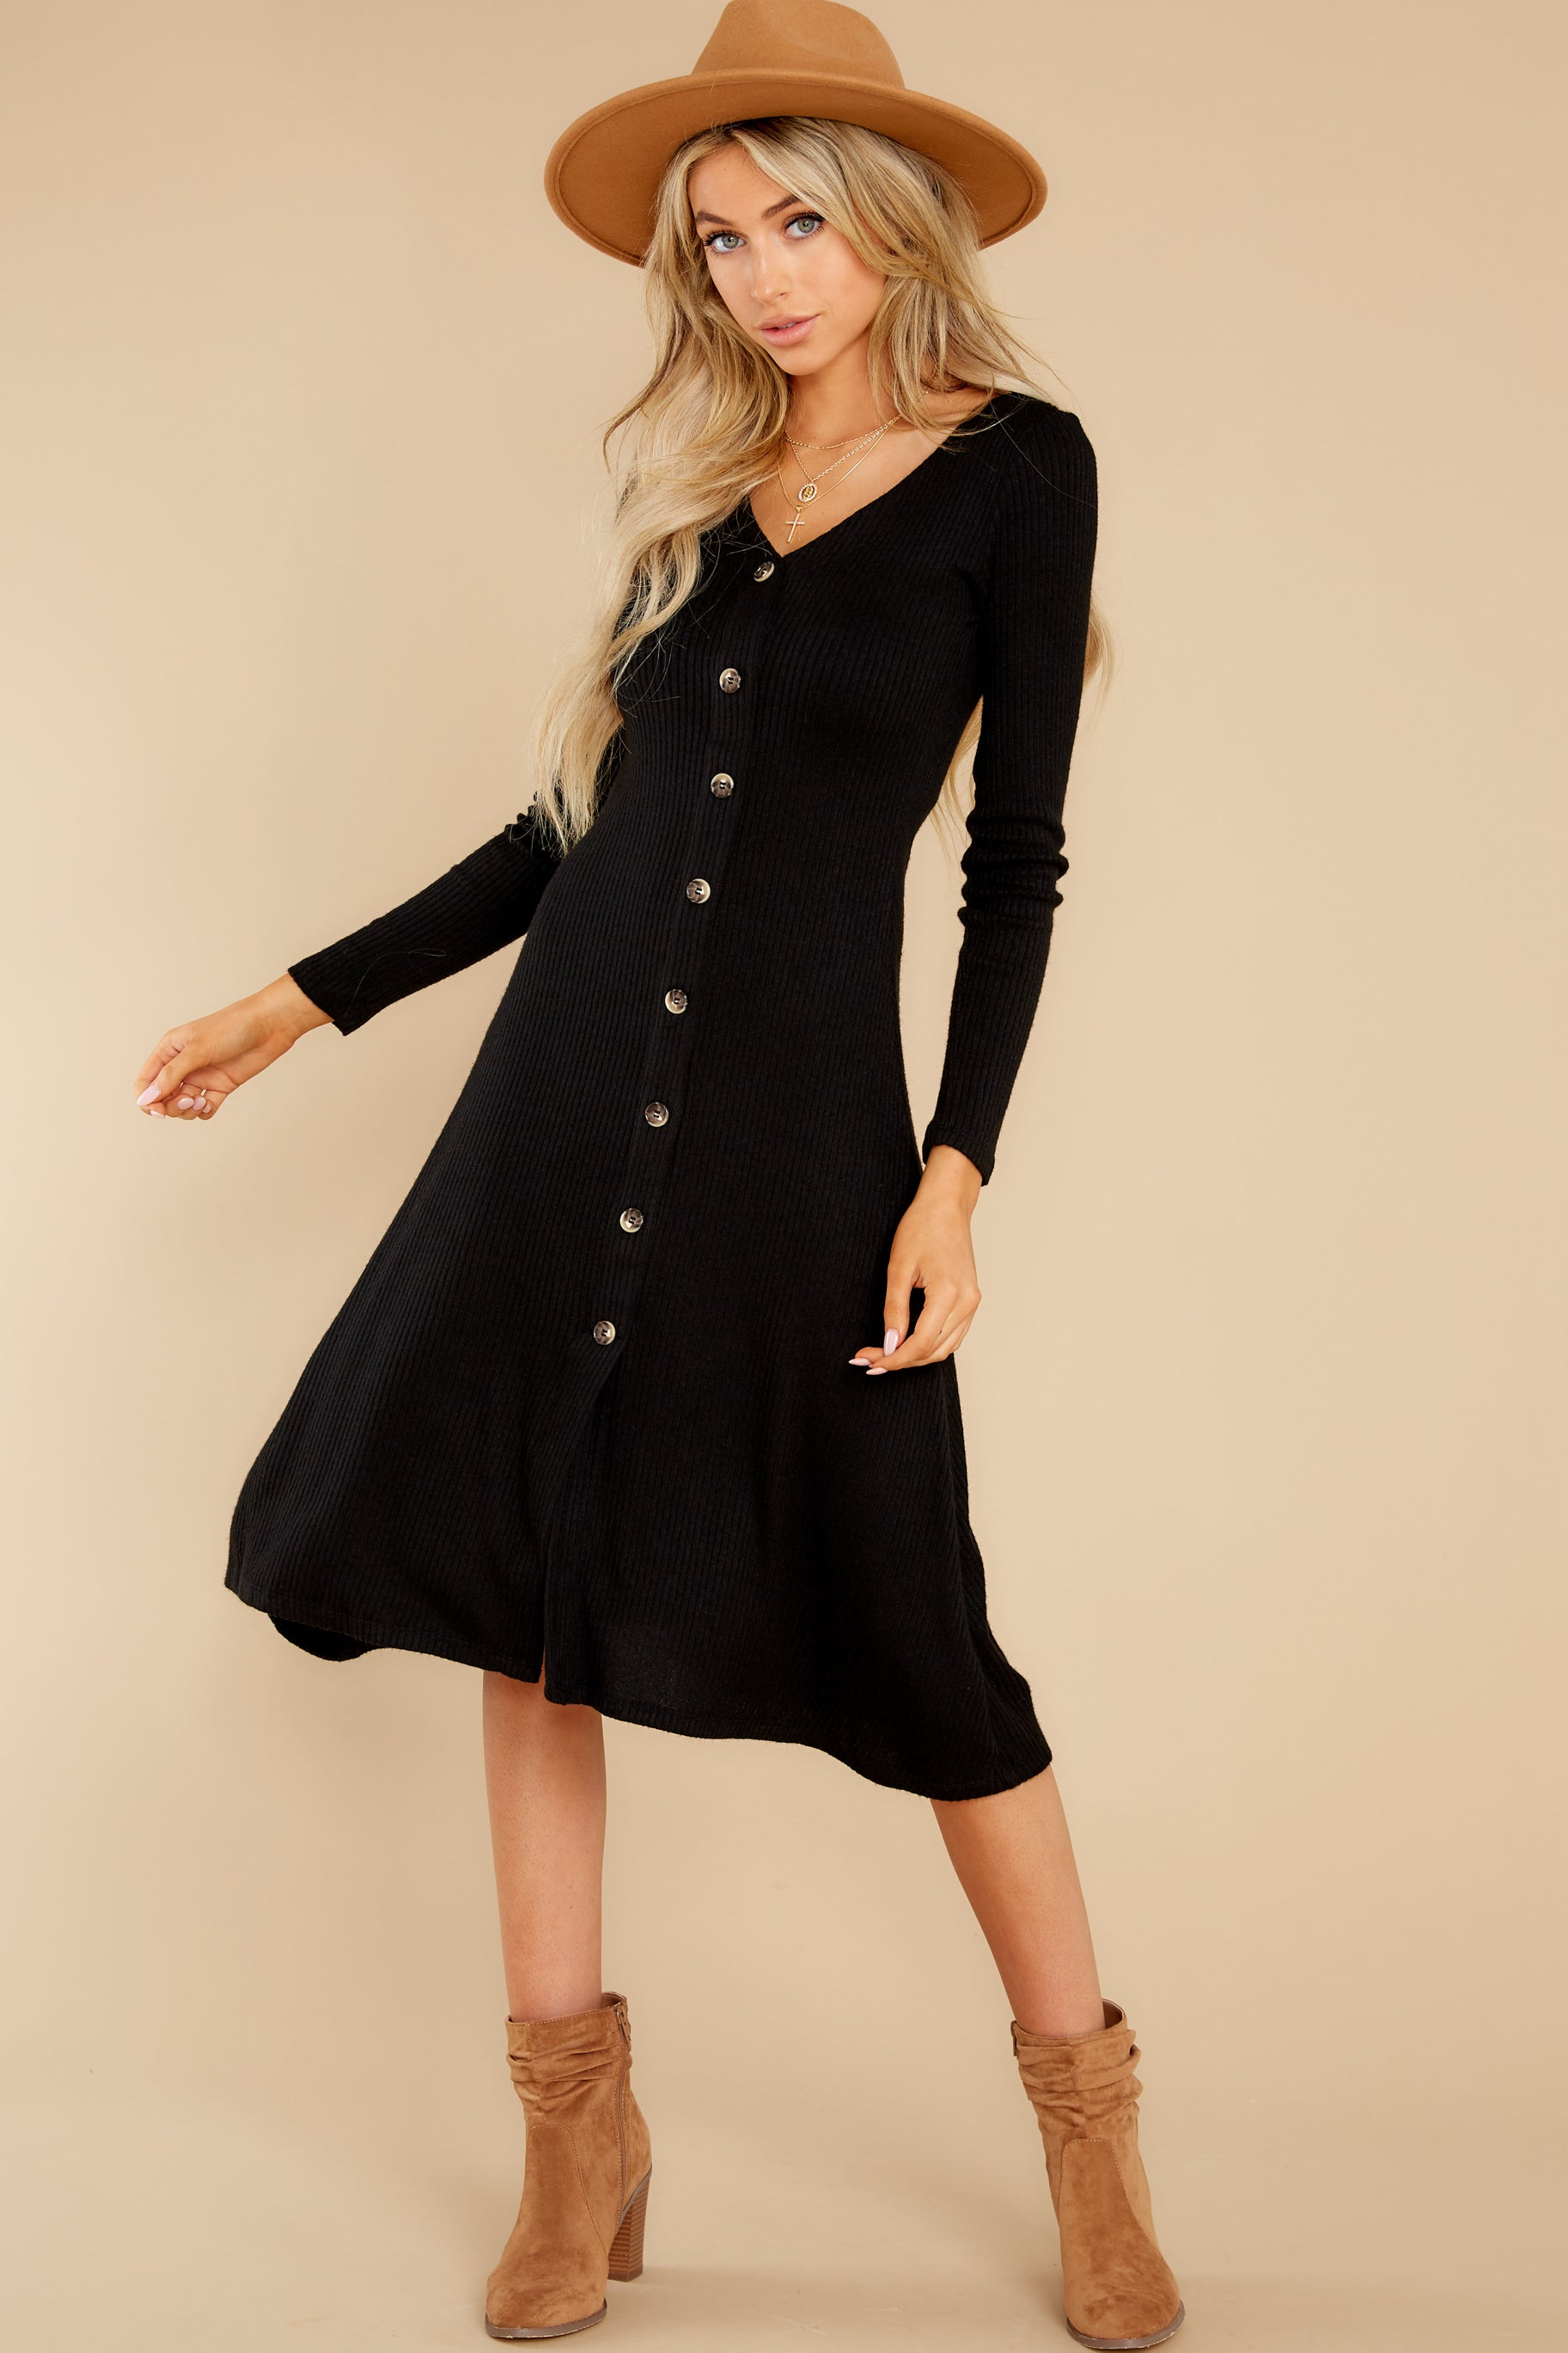 7 Keep It Uptown Black Knit Midi Dress at reddress.com